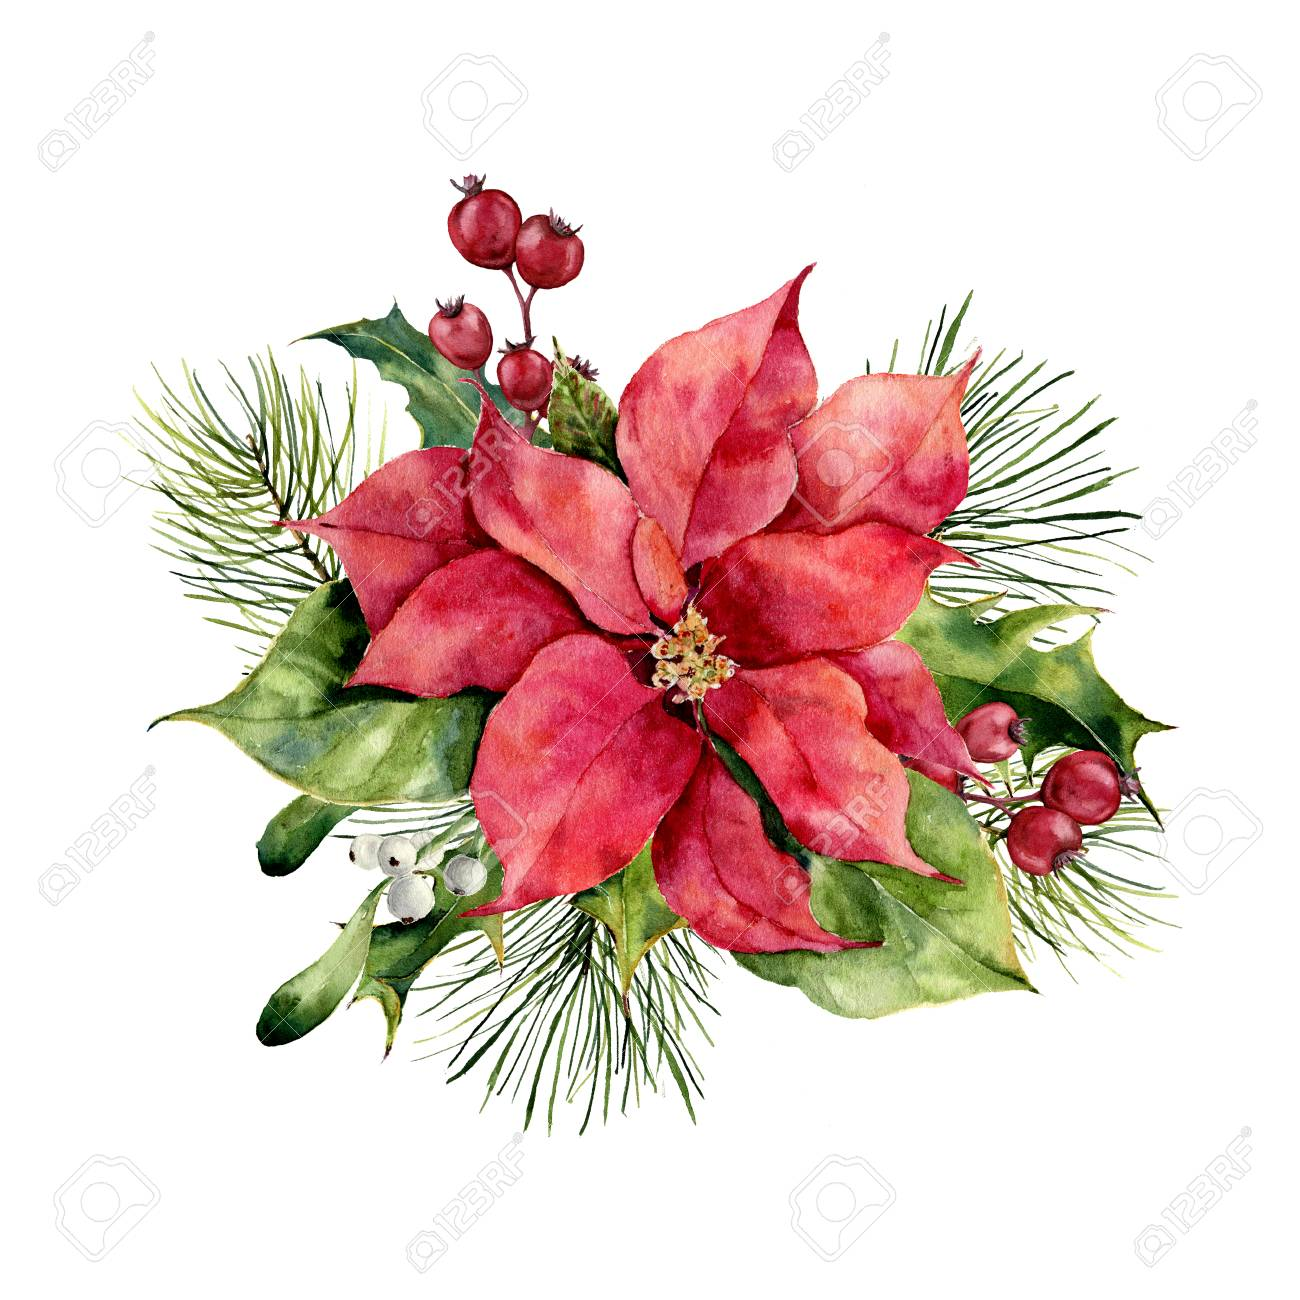 Watercolor poinsettia with Christmas floral decor. Hand painted traditional flower and plants: holly, mistletoe, berries and fir branch isolated on white background. Holiday print. - 89093300